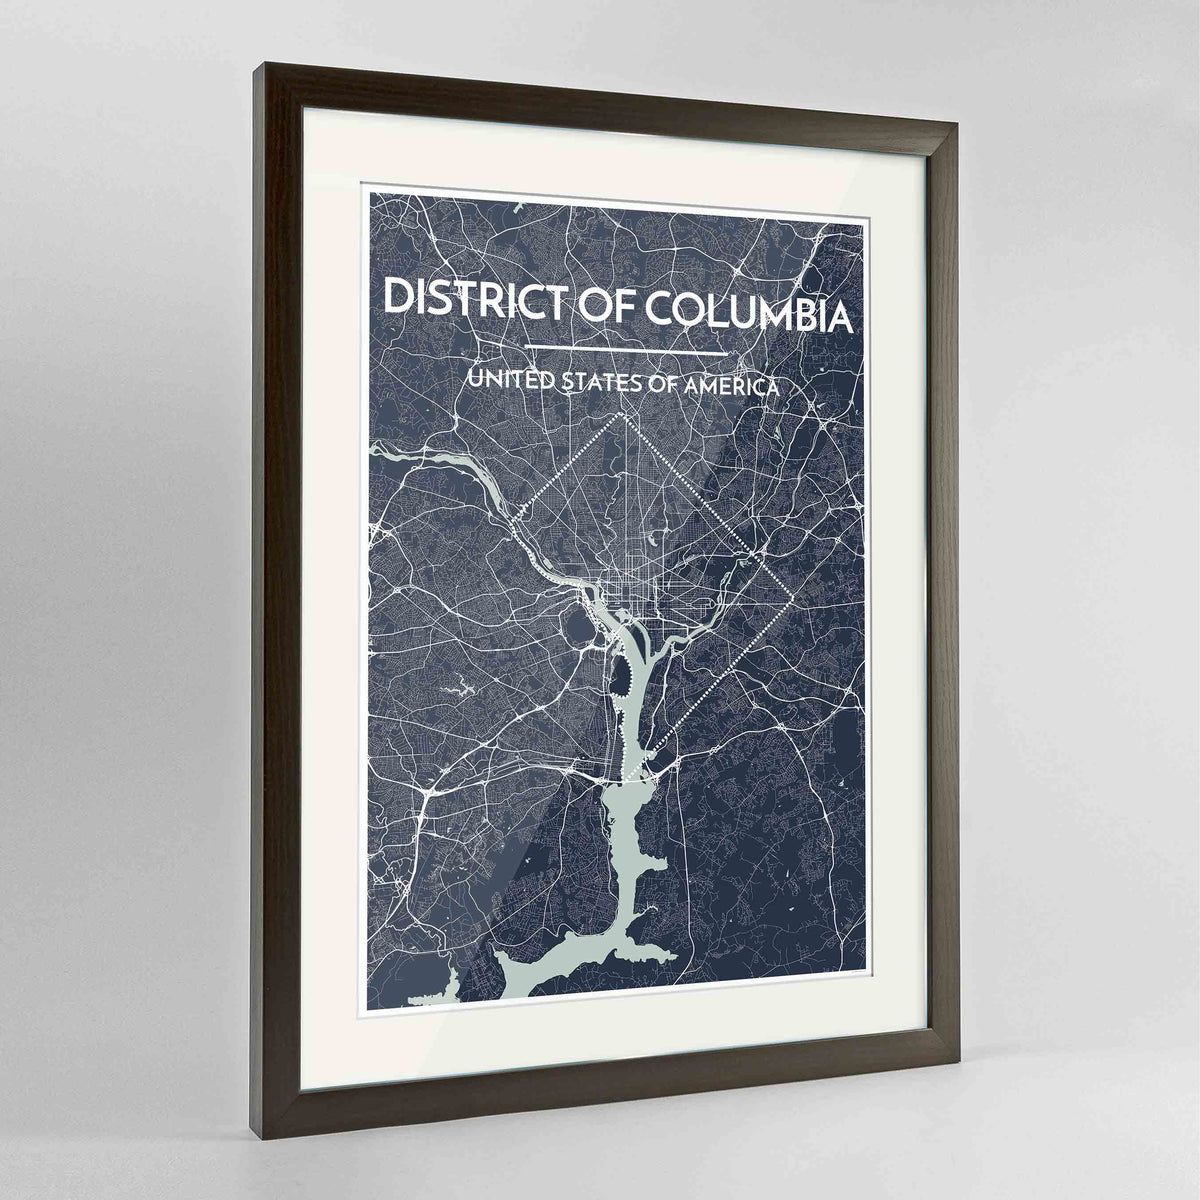 "Framed District of Columbia Map Art Print 24x36"" Contemporary Walnut frame Point Two Design Group"